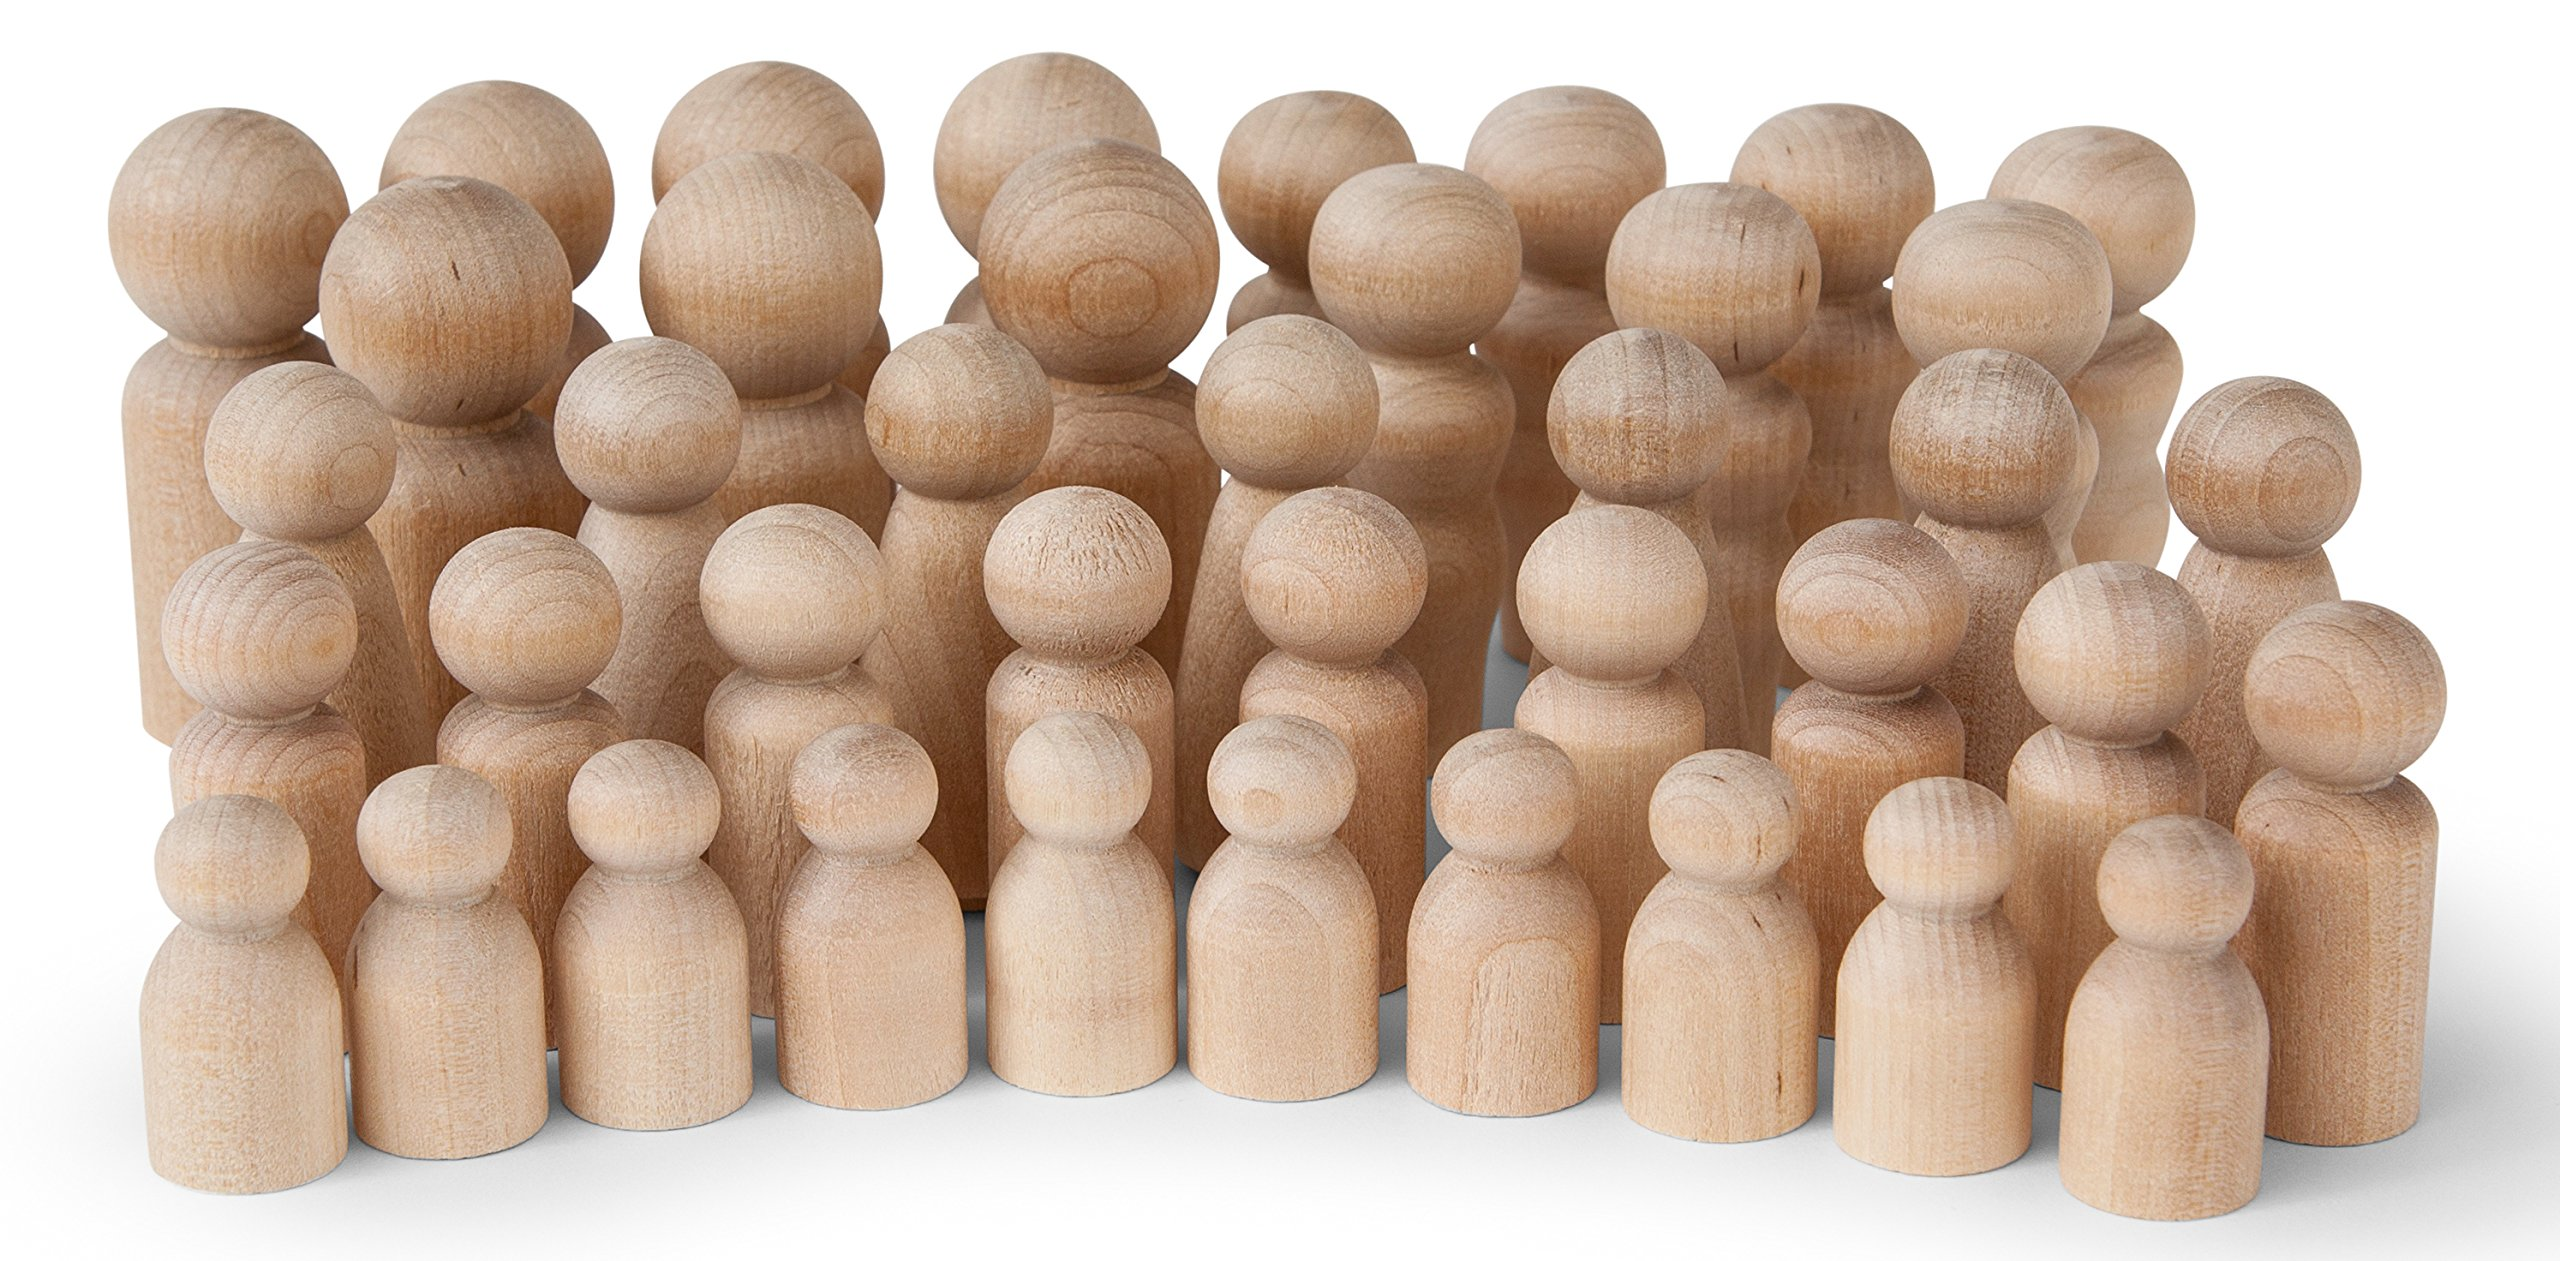 Koalabu Natural Unfinished Wooden Peg Doll Bodies, Quality People Shapes, Great for Arts and Crafts, Birch and Maple Wood Turnings, Artist Set of 40 in 5 Different Shapes and Sizes by Koalabu